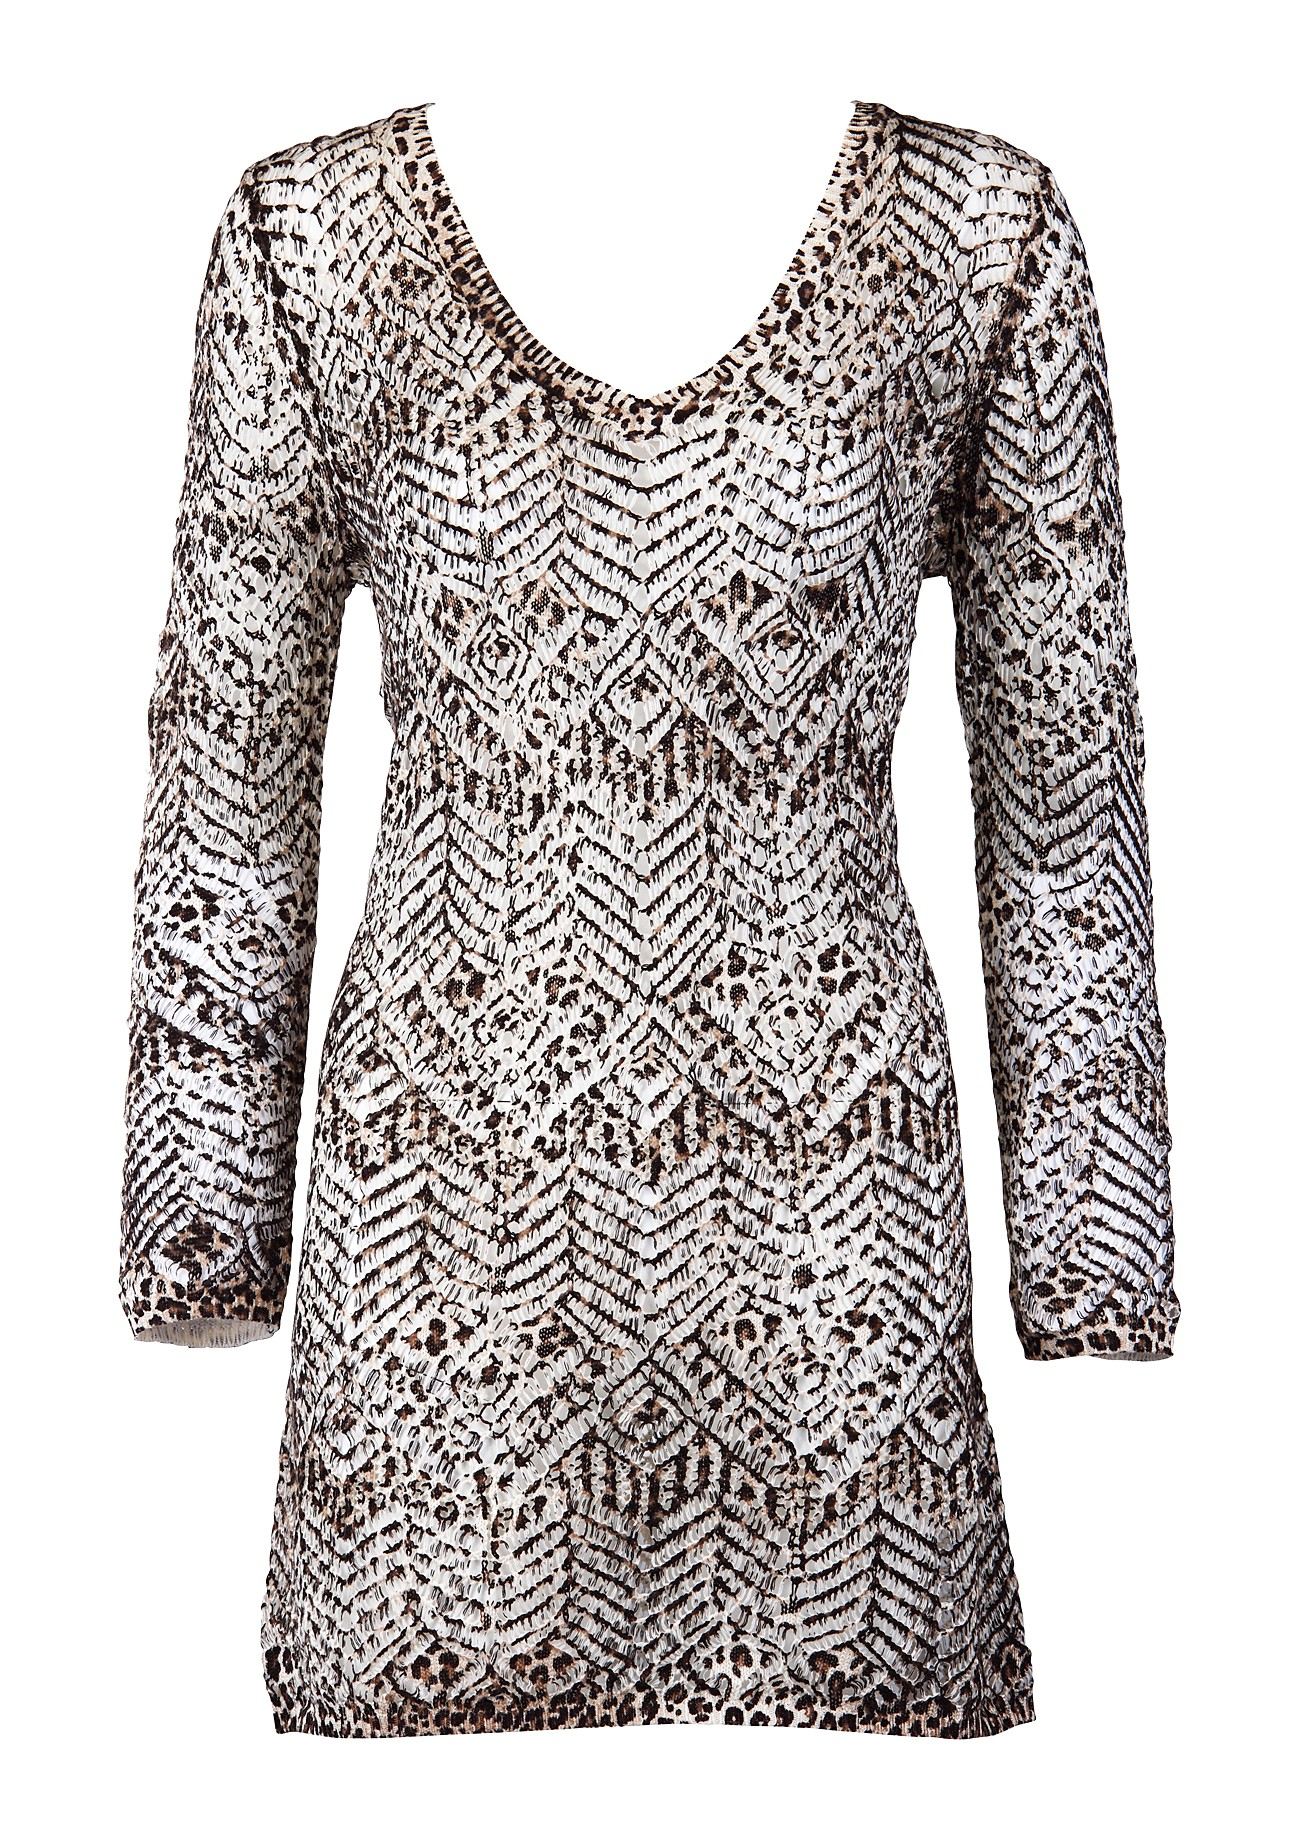 Twin set Simona Barbieri Leopard Knitted Dress | dolcifollie.co.uk